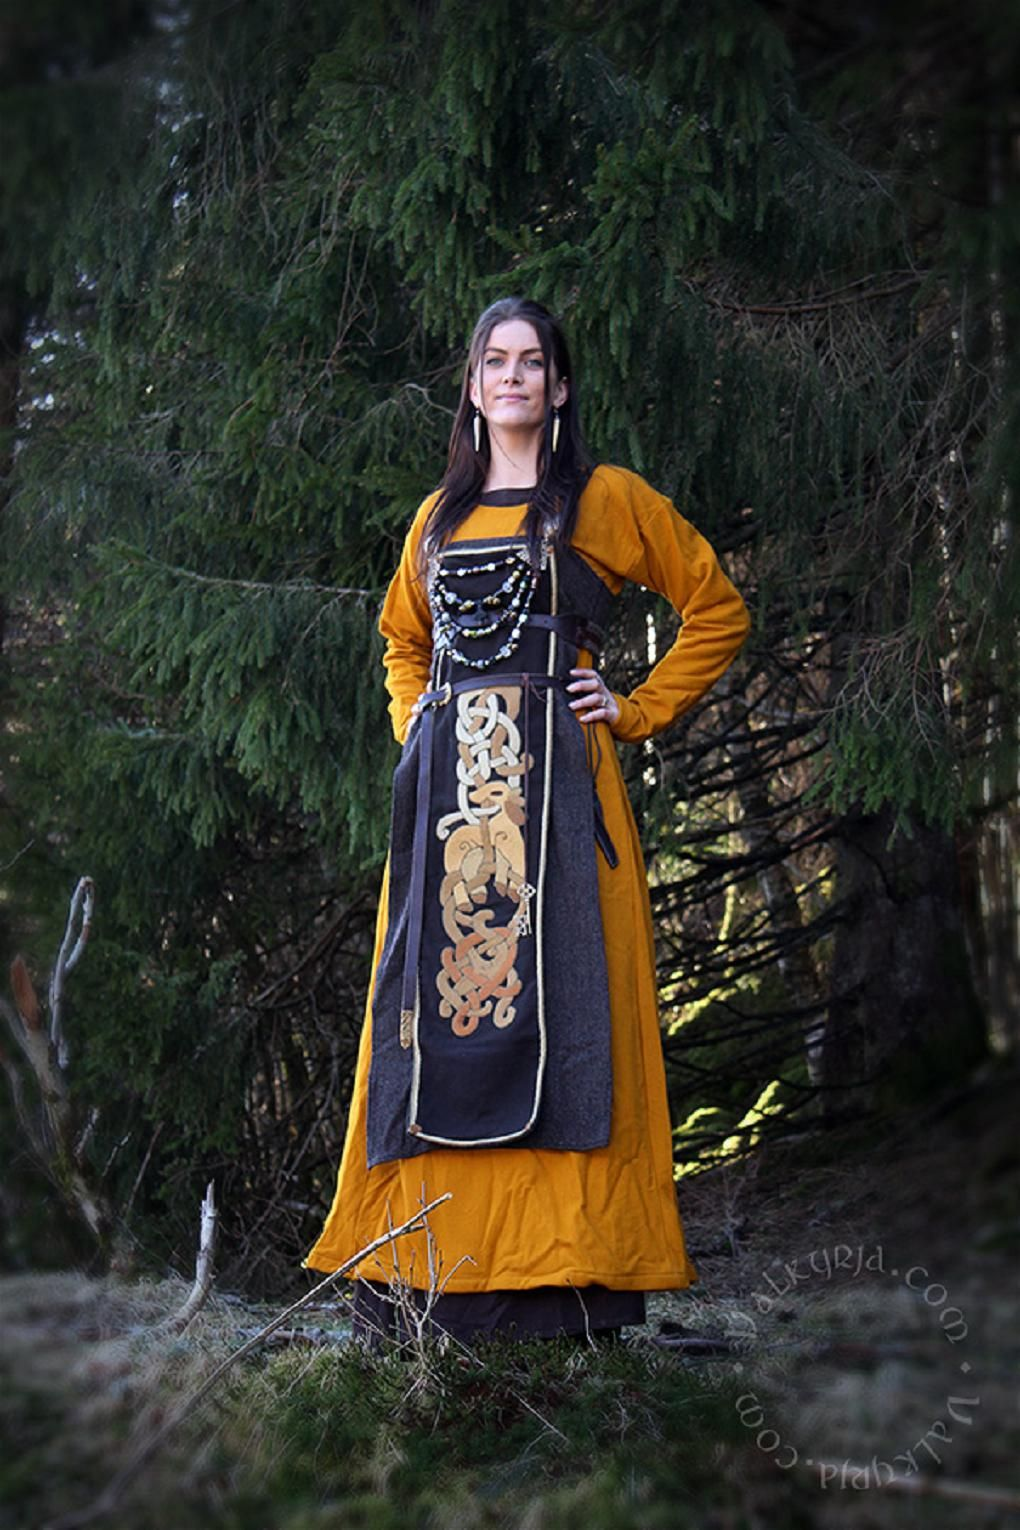 Gorgeous embroidery! http://www.valkyrja.com/ Looks like the embroidery is on a panel pined over the apron dress.